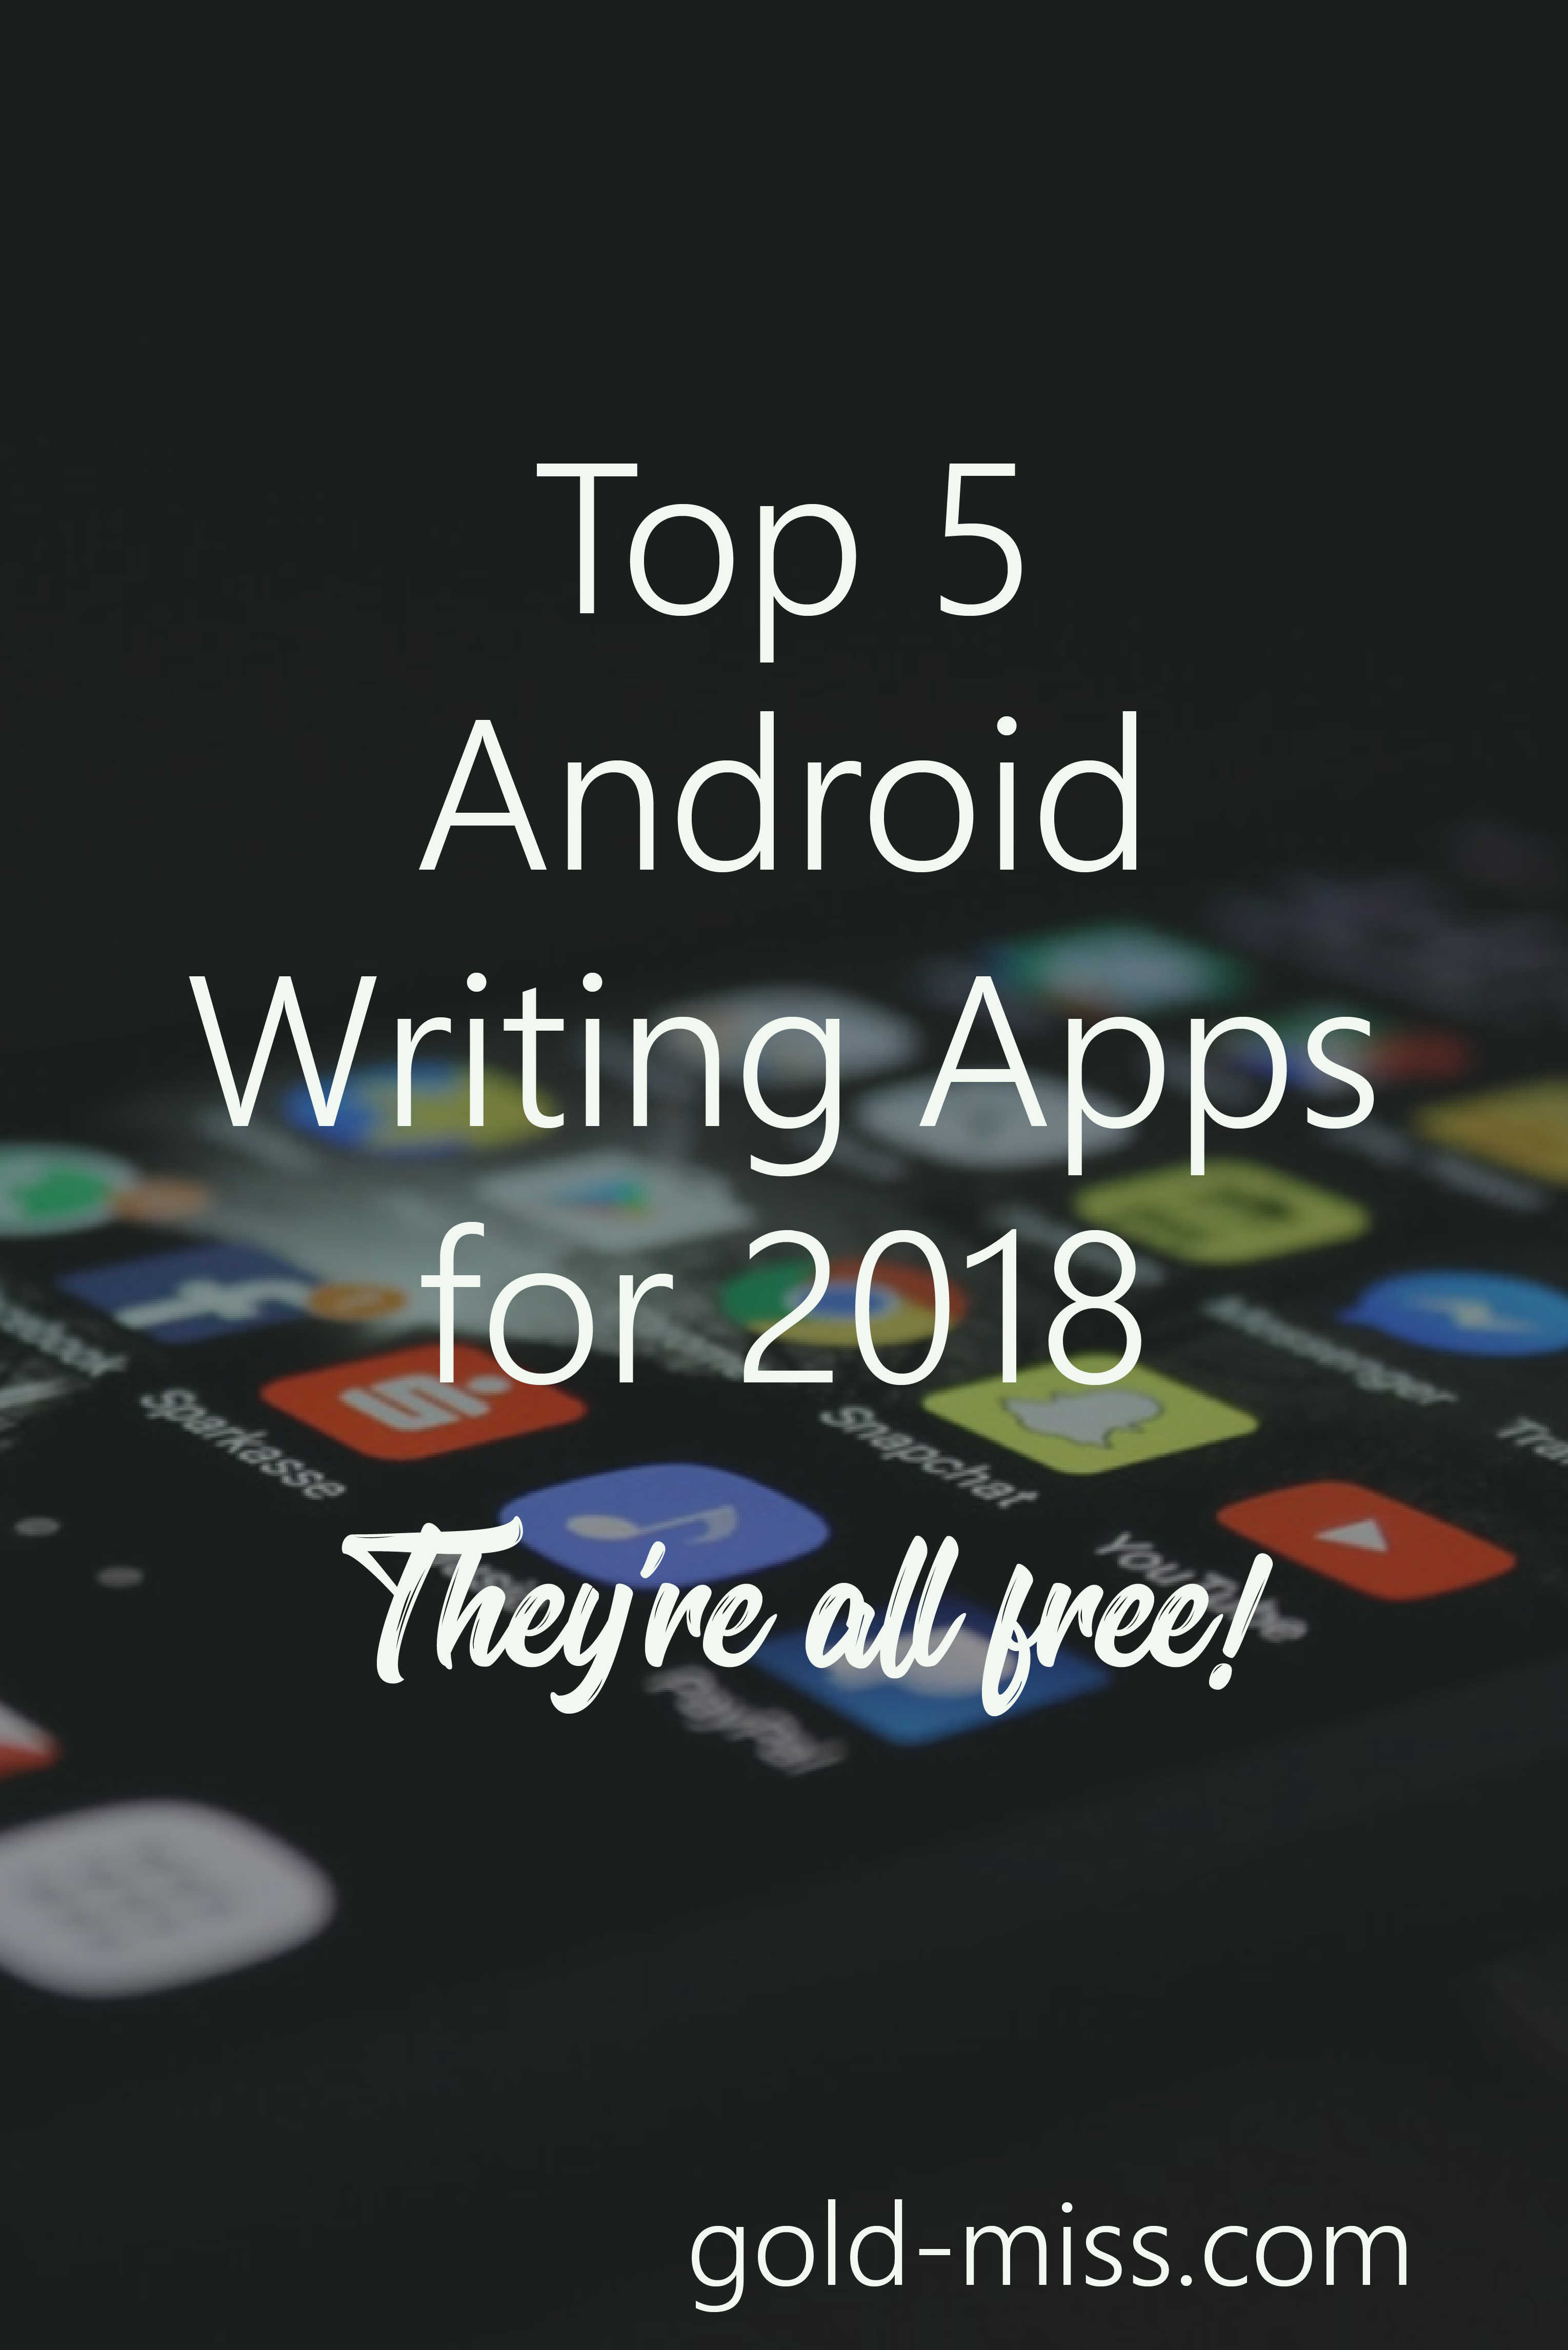 Top 5 Android Writing Apps for 2018 (They're All Free